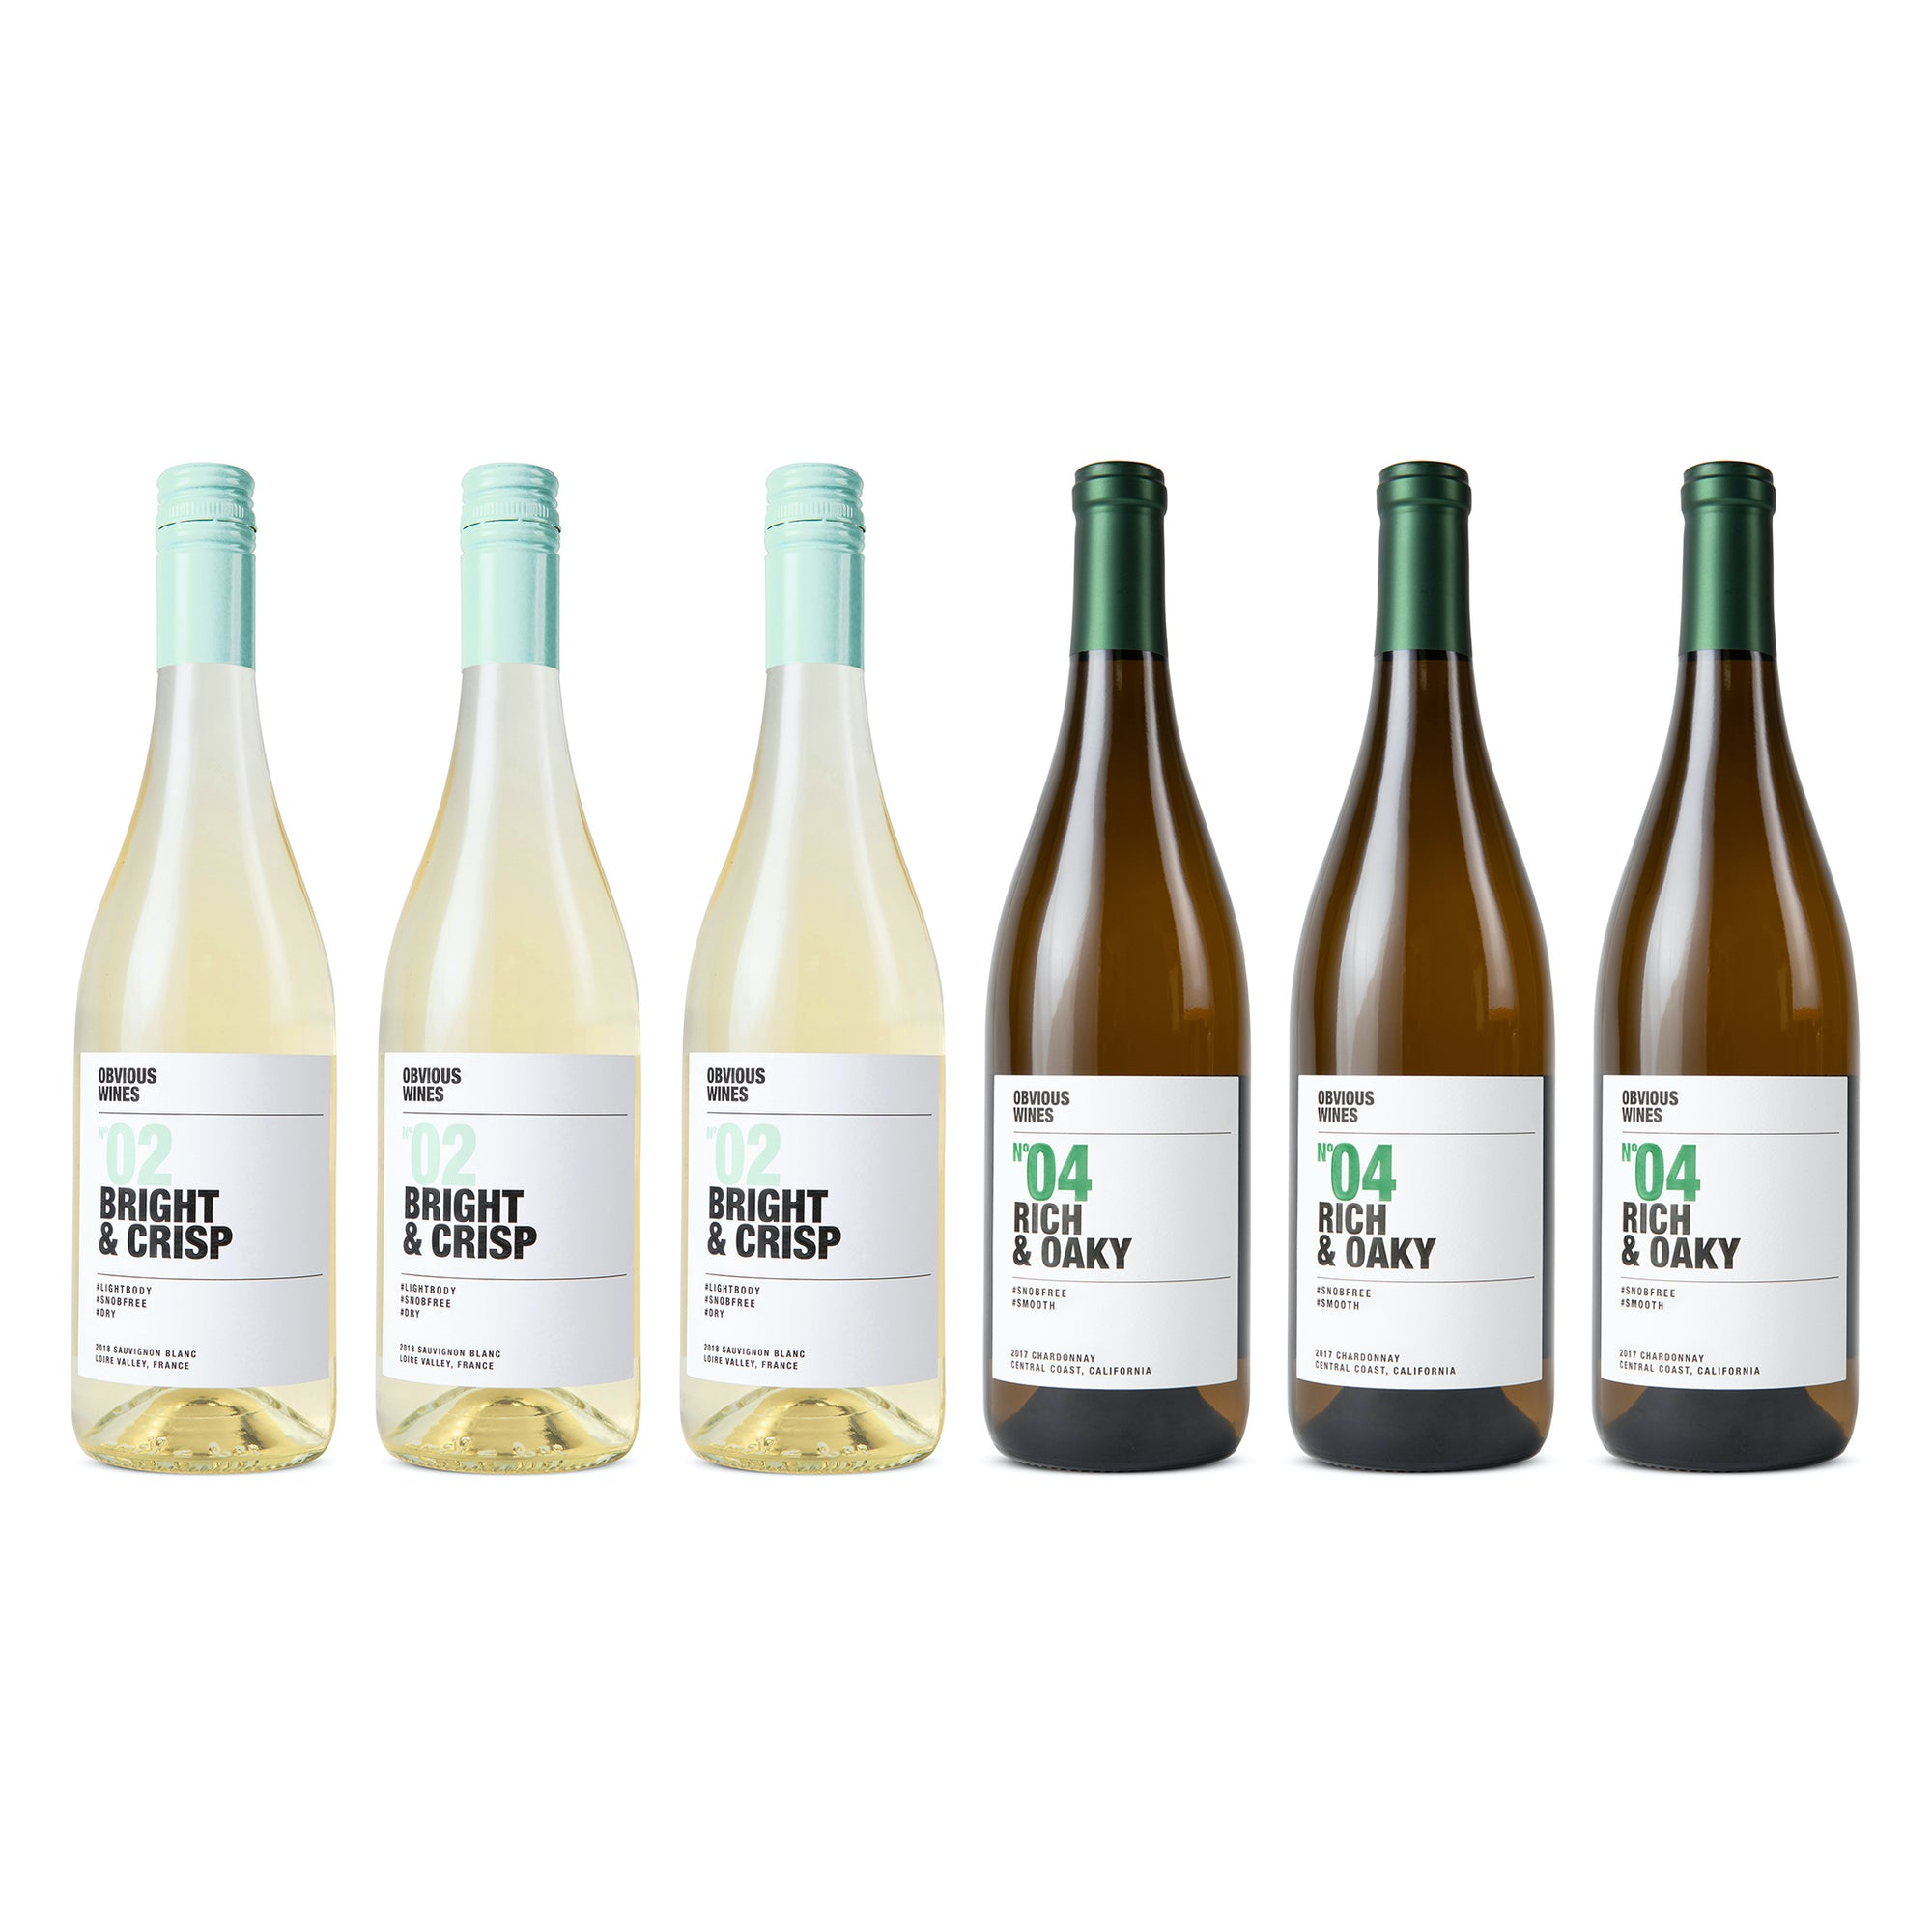 Pack: White Wines (6 bottles)